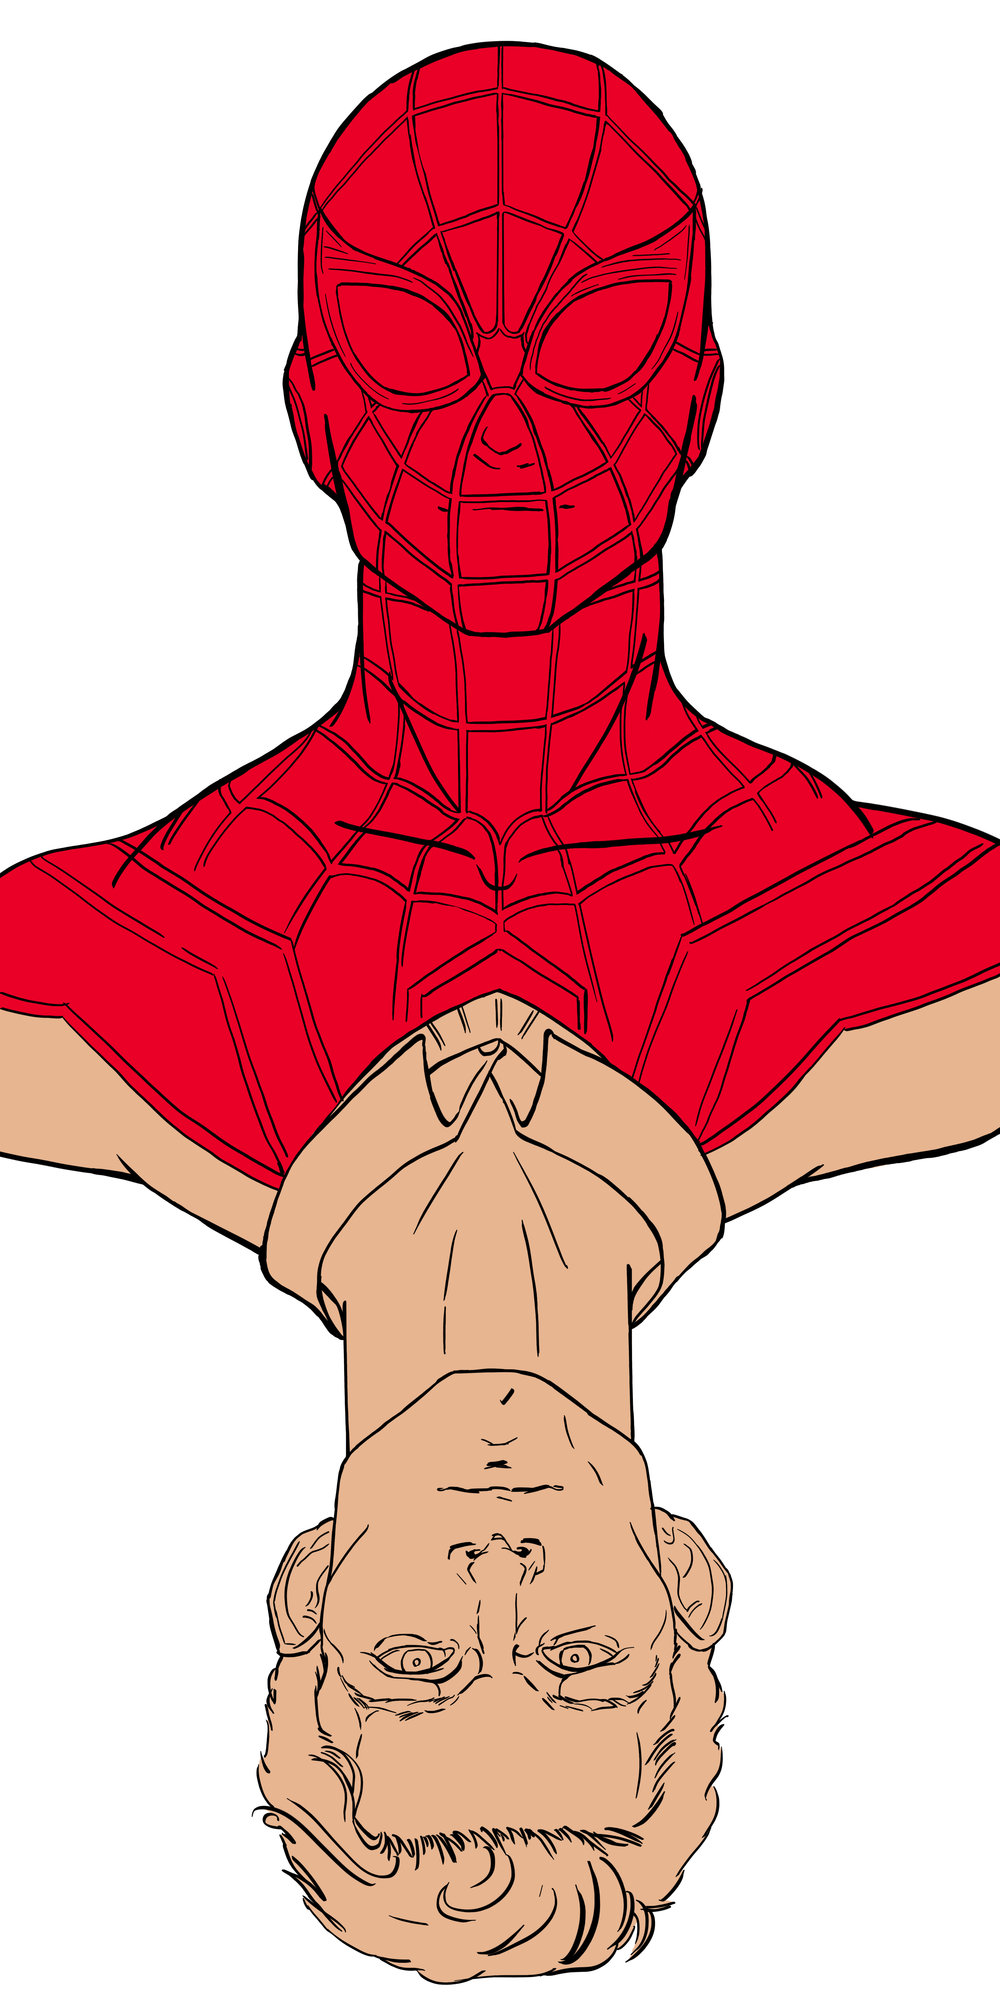 piderman3.jpg